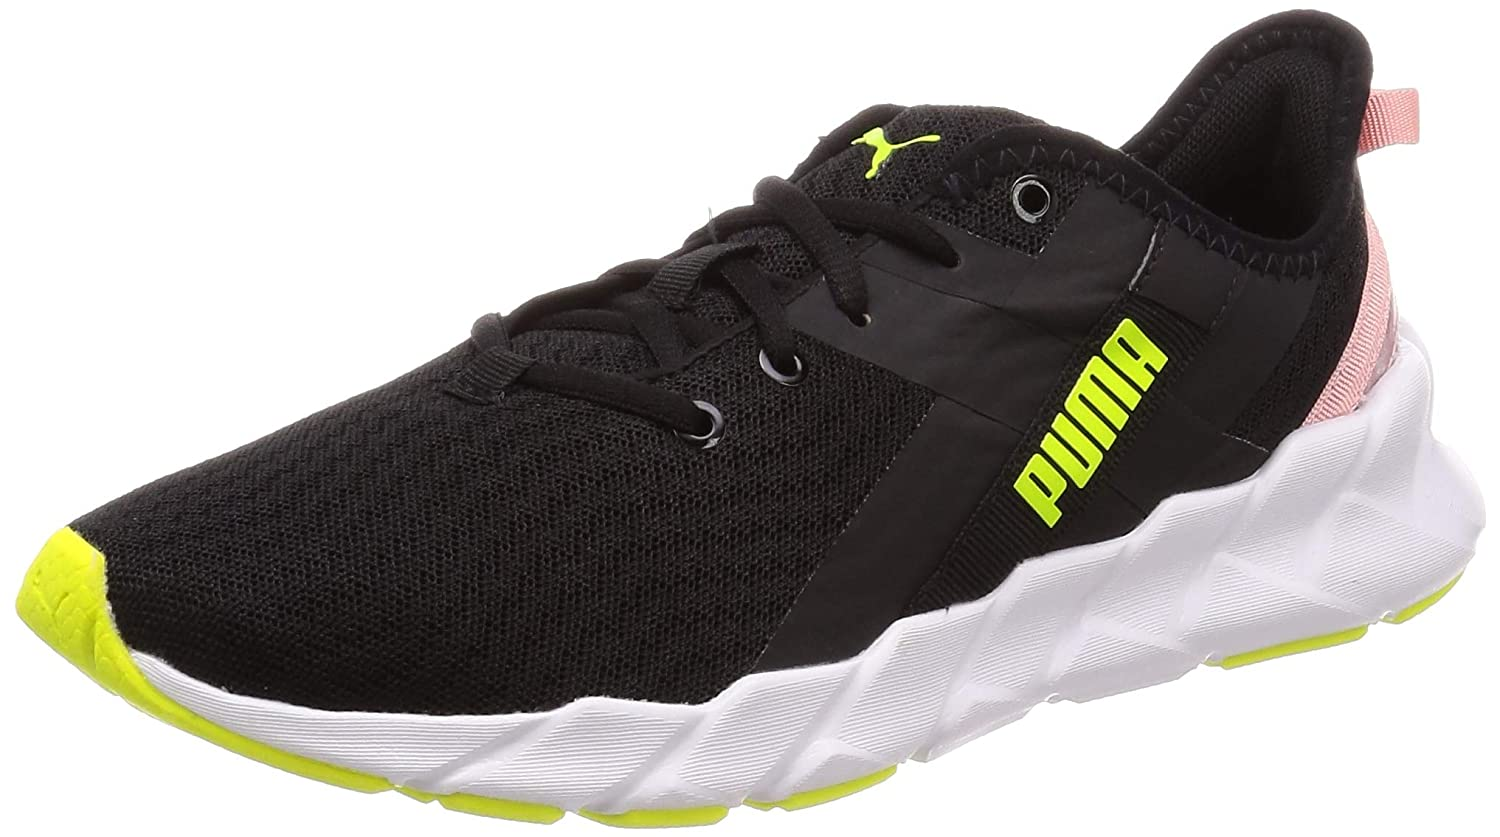 Puma Women's Weave Xt Shift WN's Training Shoes